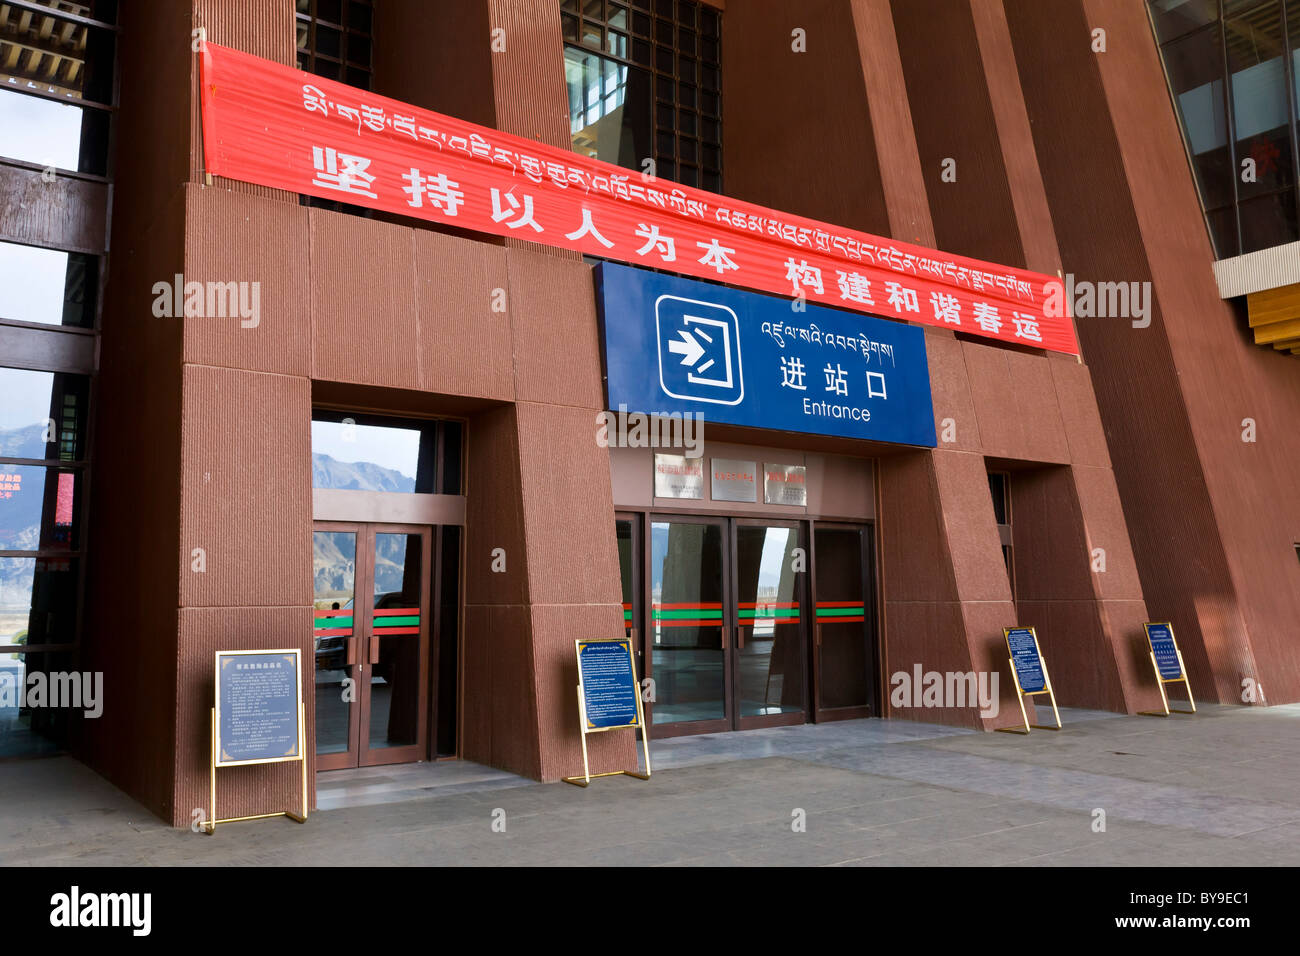 Main entrance to the railway station Lhasa Tibet. JMH4619 - Stock Image